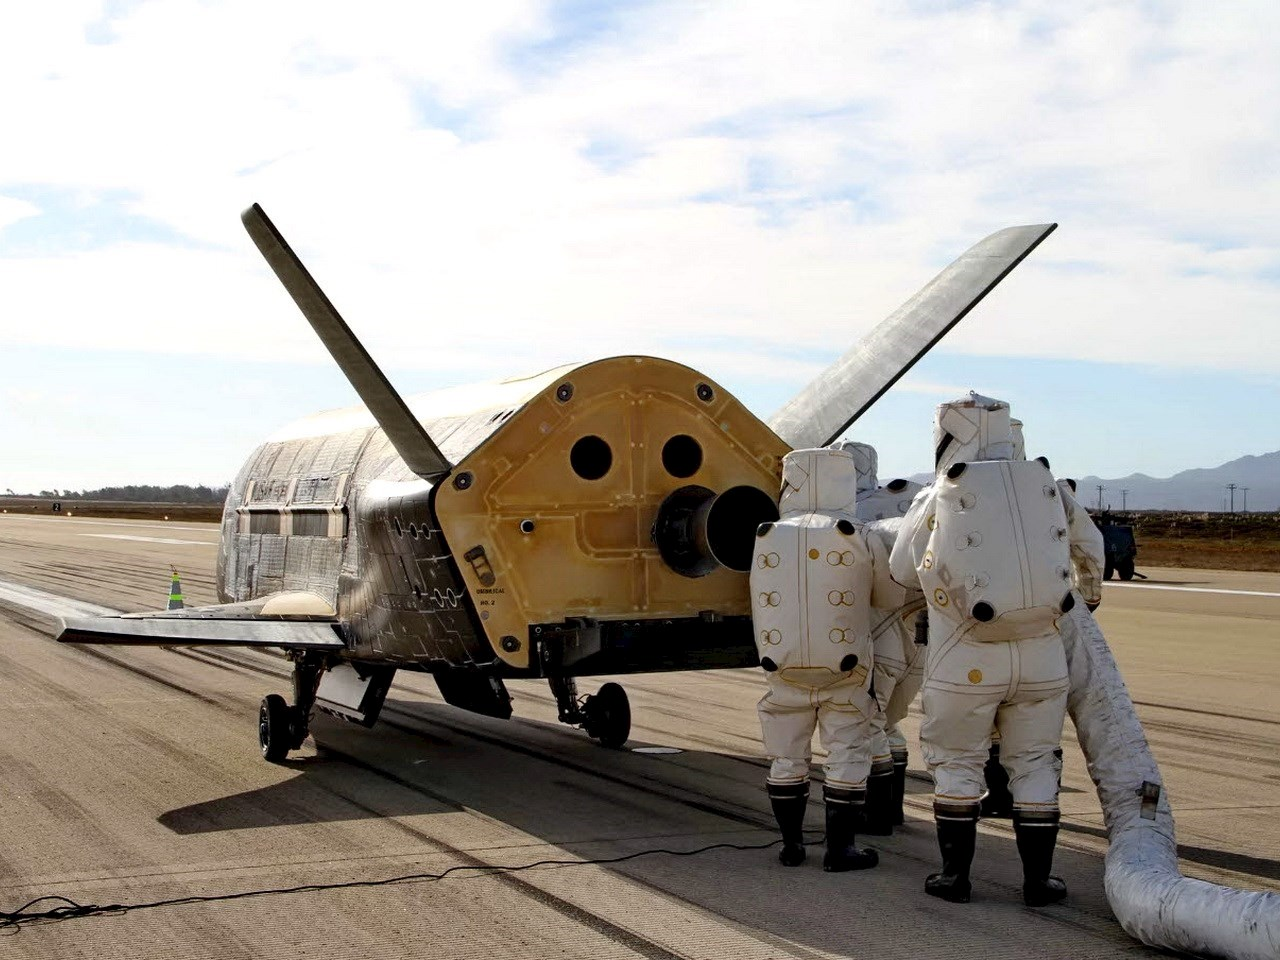 The U.S. Air Force's X-37B spaceplane sits on the runway